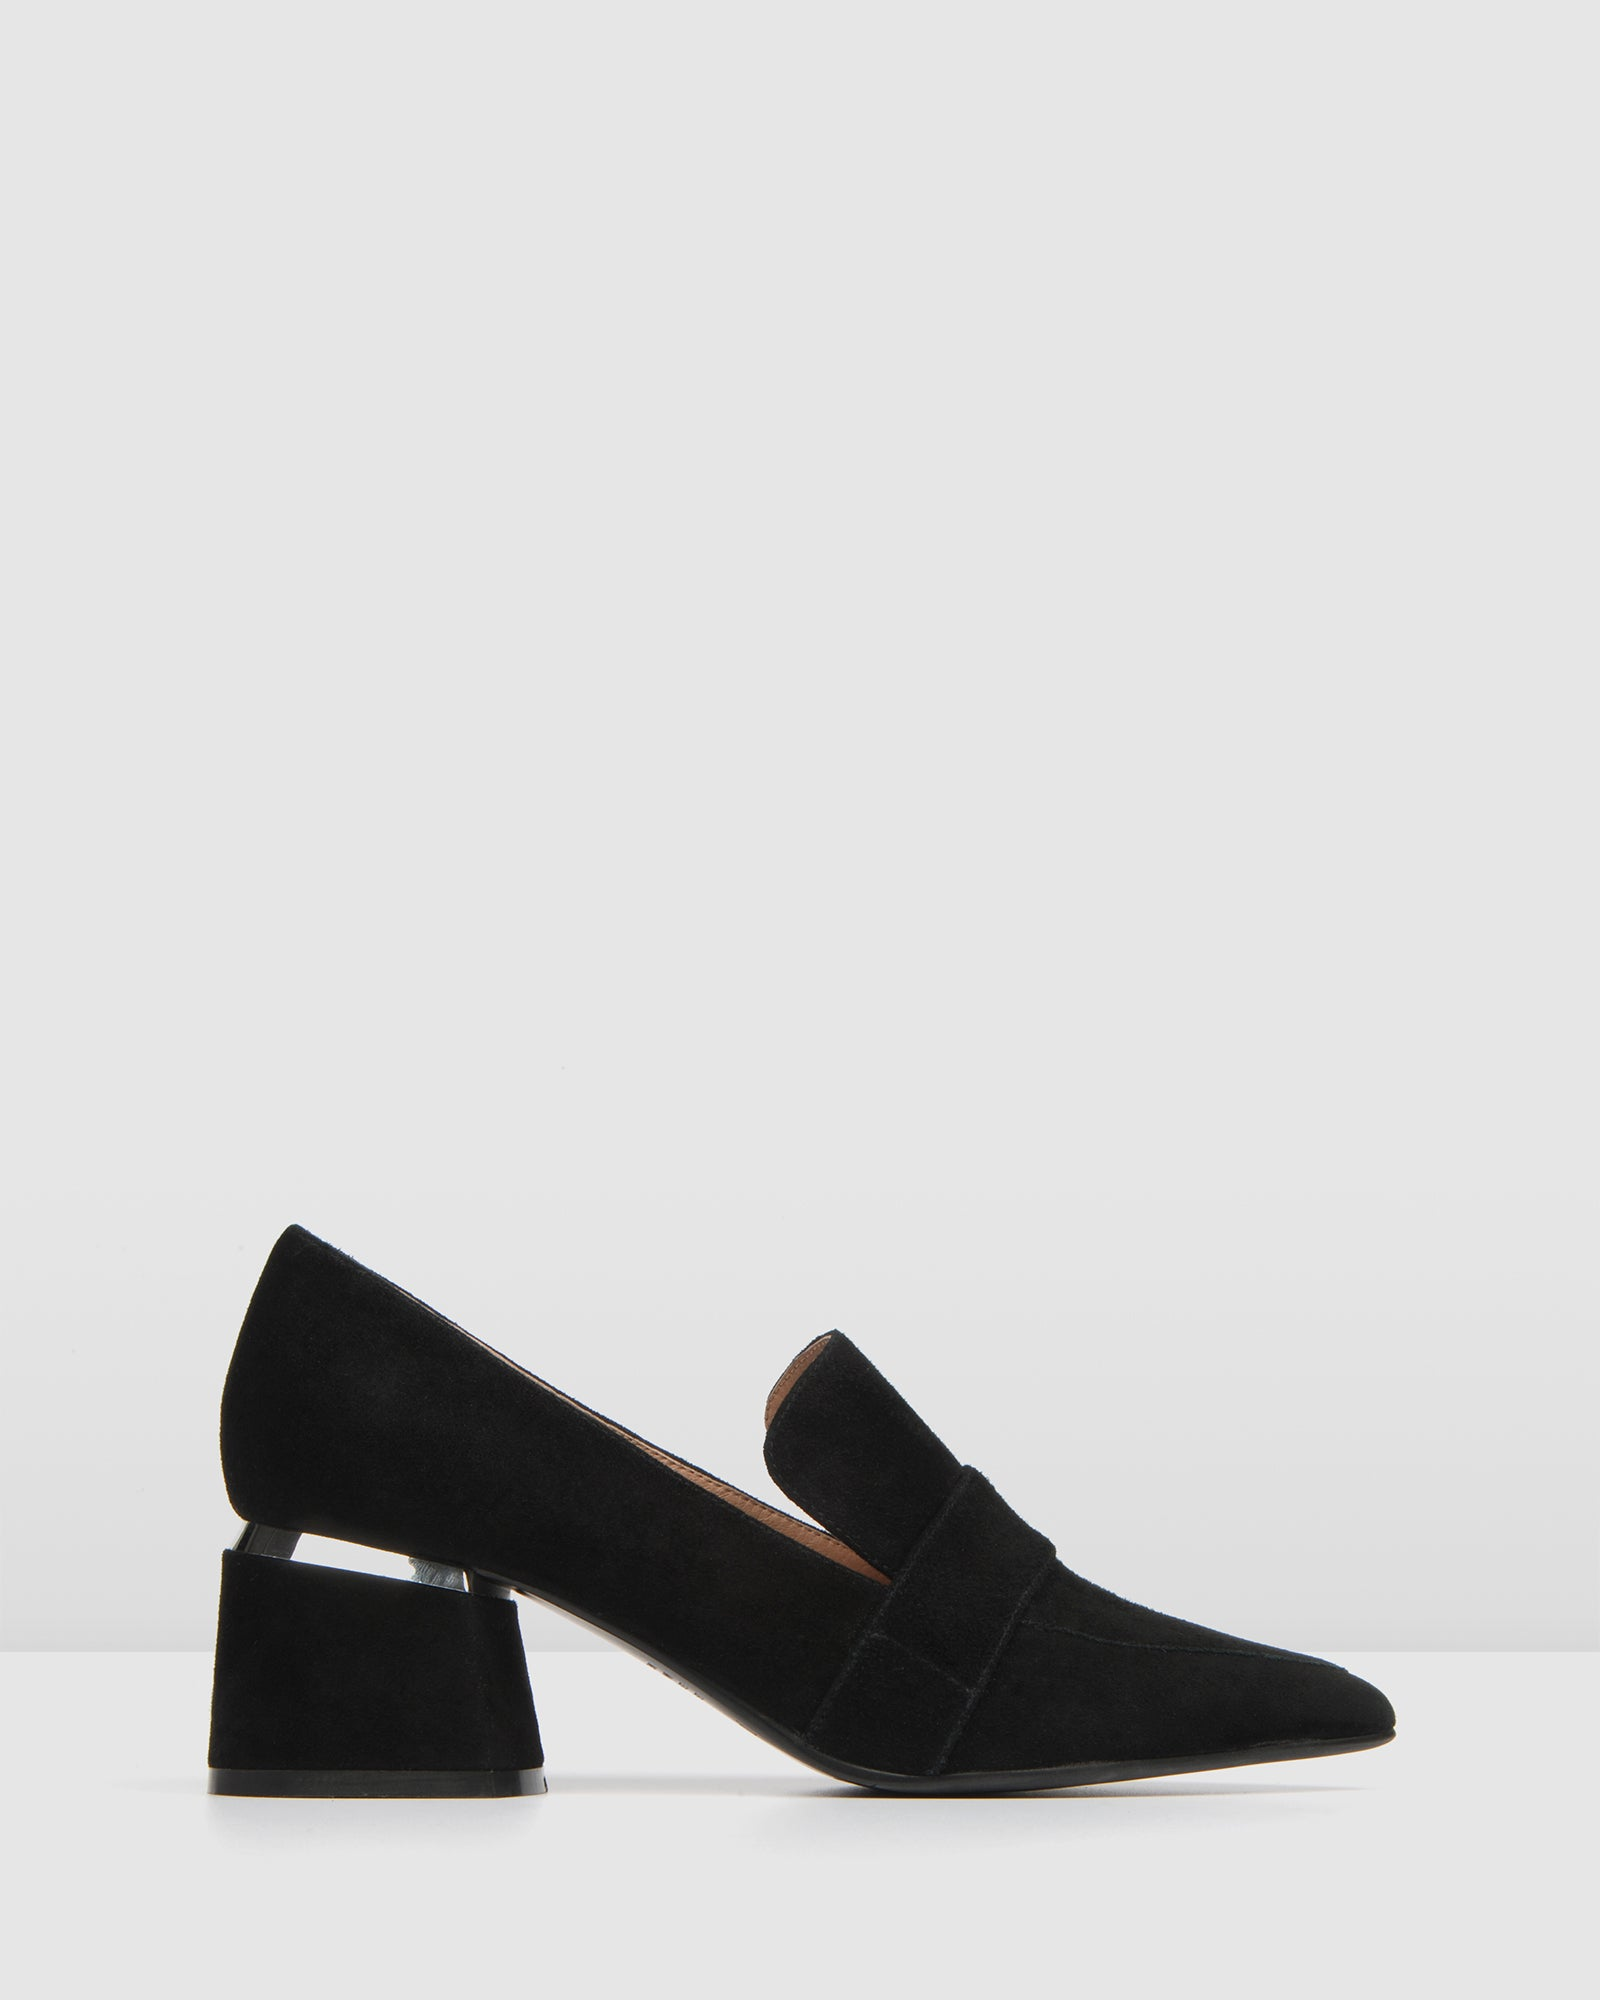 CELESTE LOW HEEL LOAFERS BLACK SUEDE